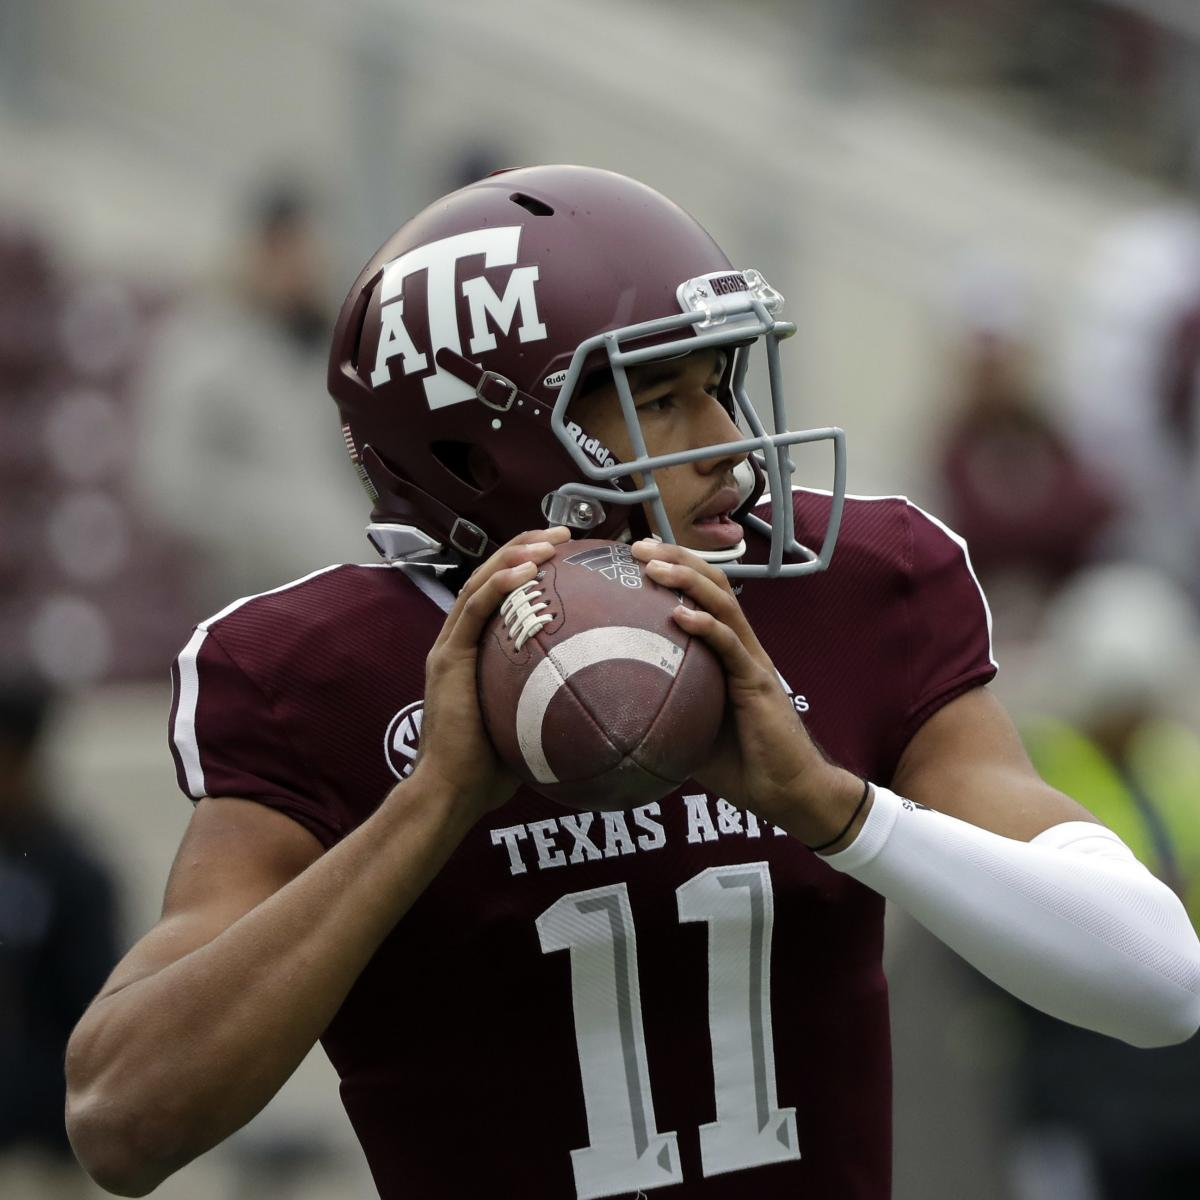 LSU Tigers vs. Texas A&M Aggies Odds, Analysis, College ...